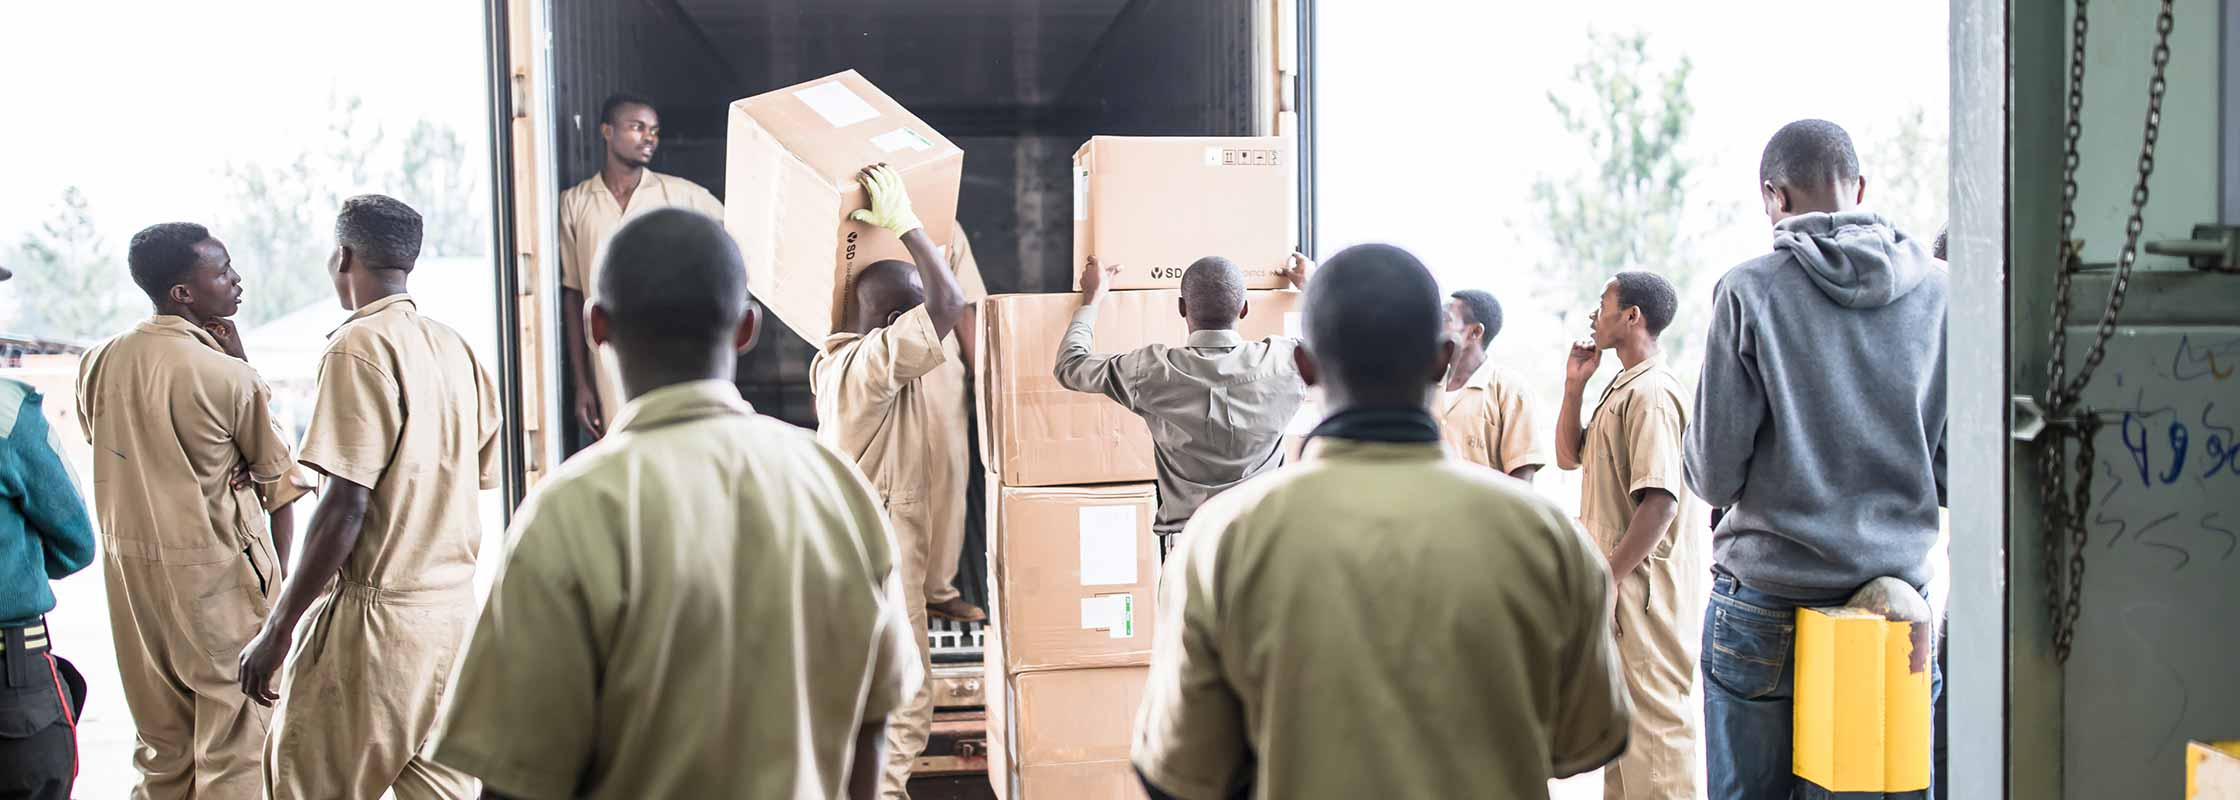 AMS workers fulfilling a procurement shipment that has arrived to the warehouse